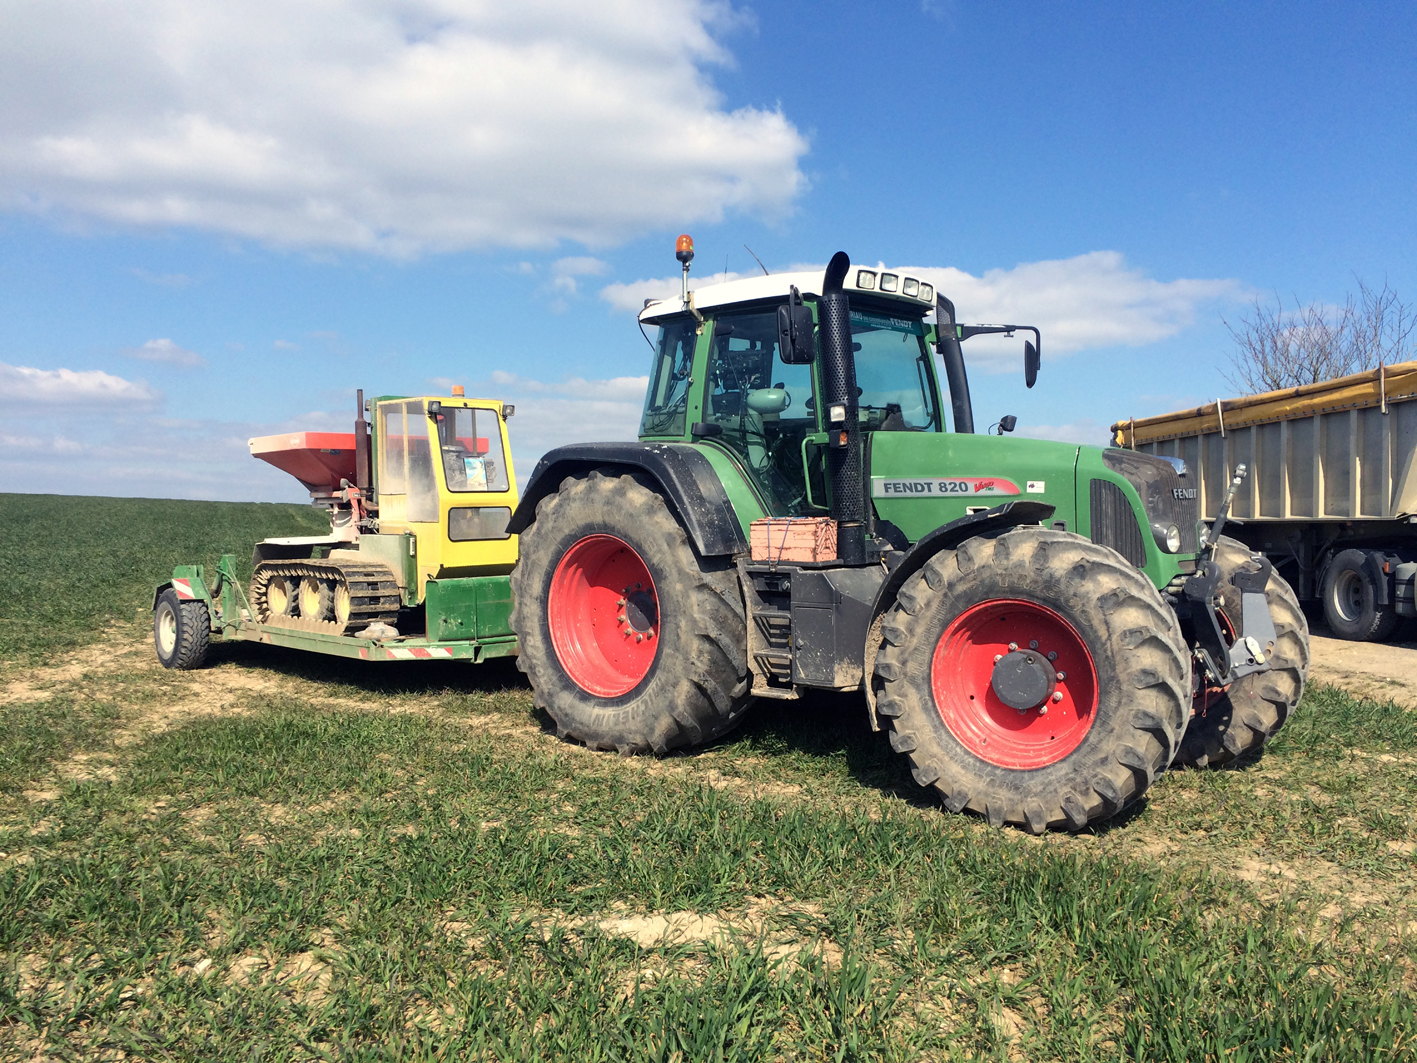 Gabard 79 travaux agricoles cholet bressuire maul on - Meteo cholet 49 ...